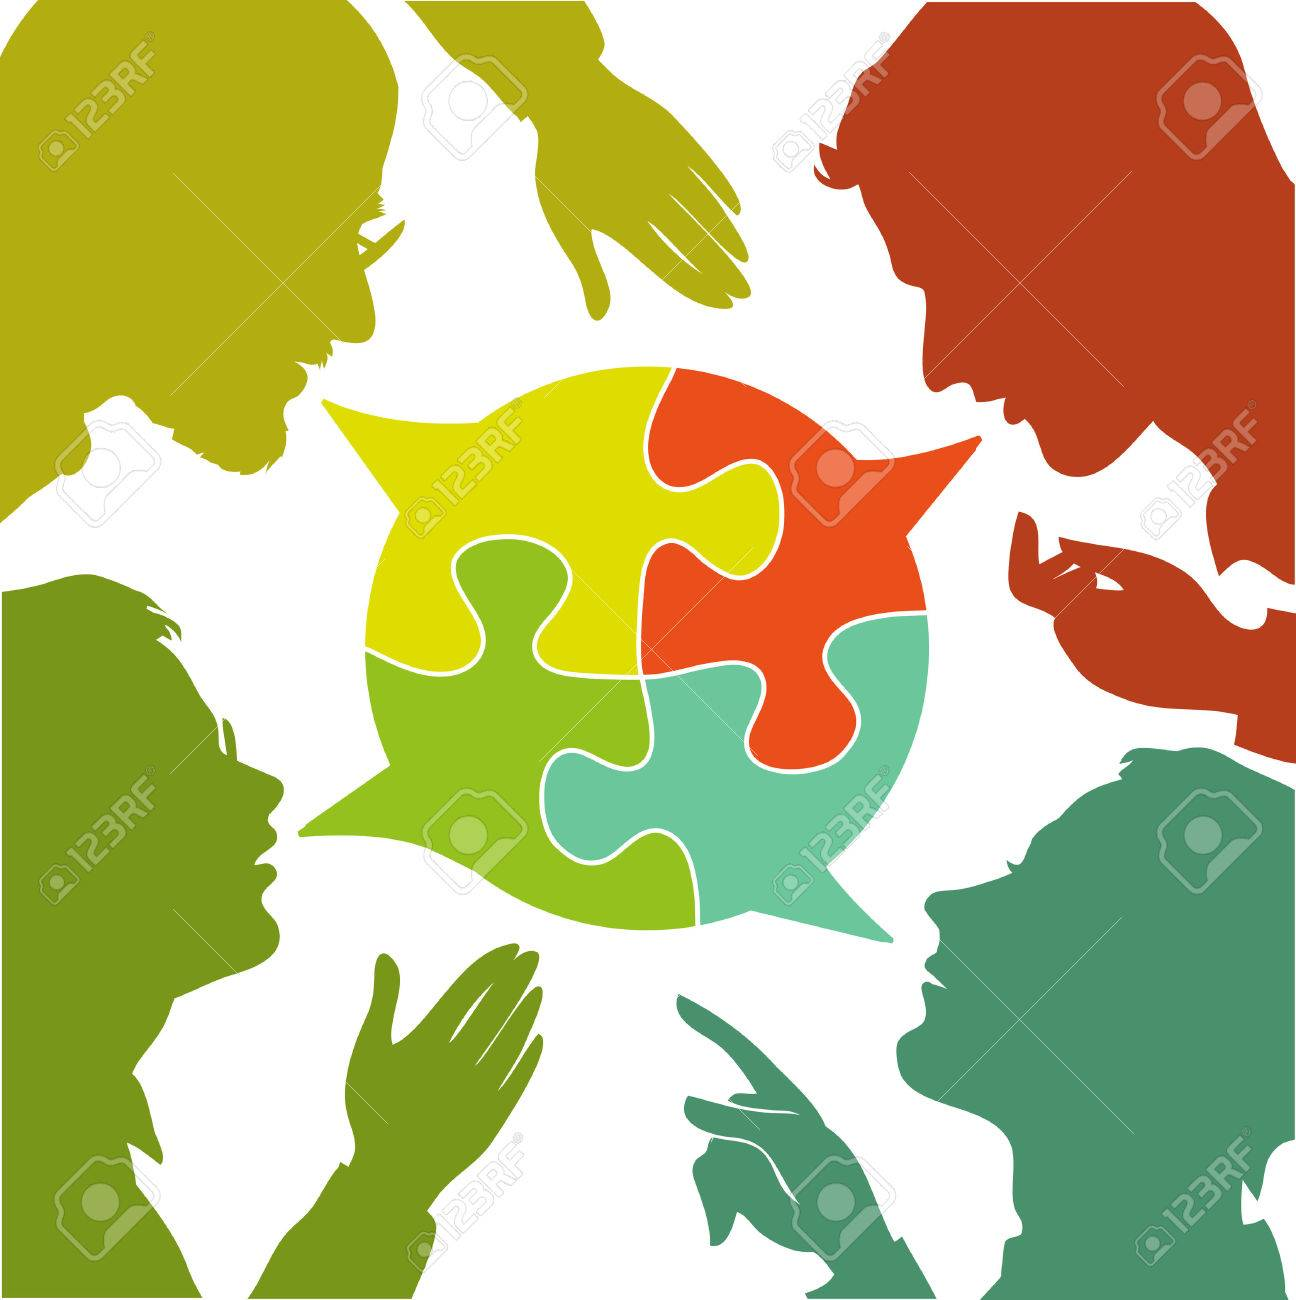 silhouettes of people leading dialogues with colorful speech bubbles. Speech bubbles in the form of puzzles. Dialogue and consensus. - 46515309